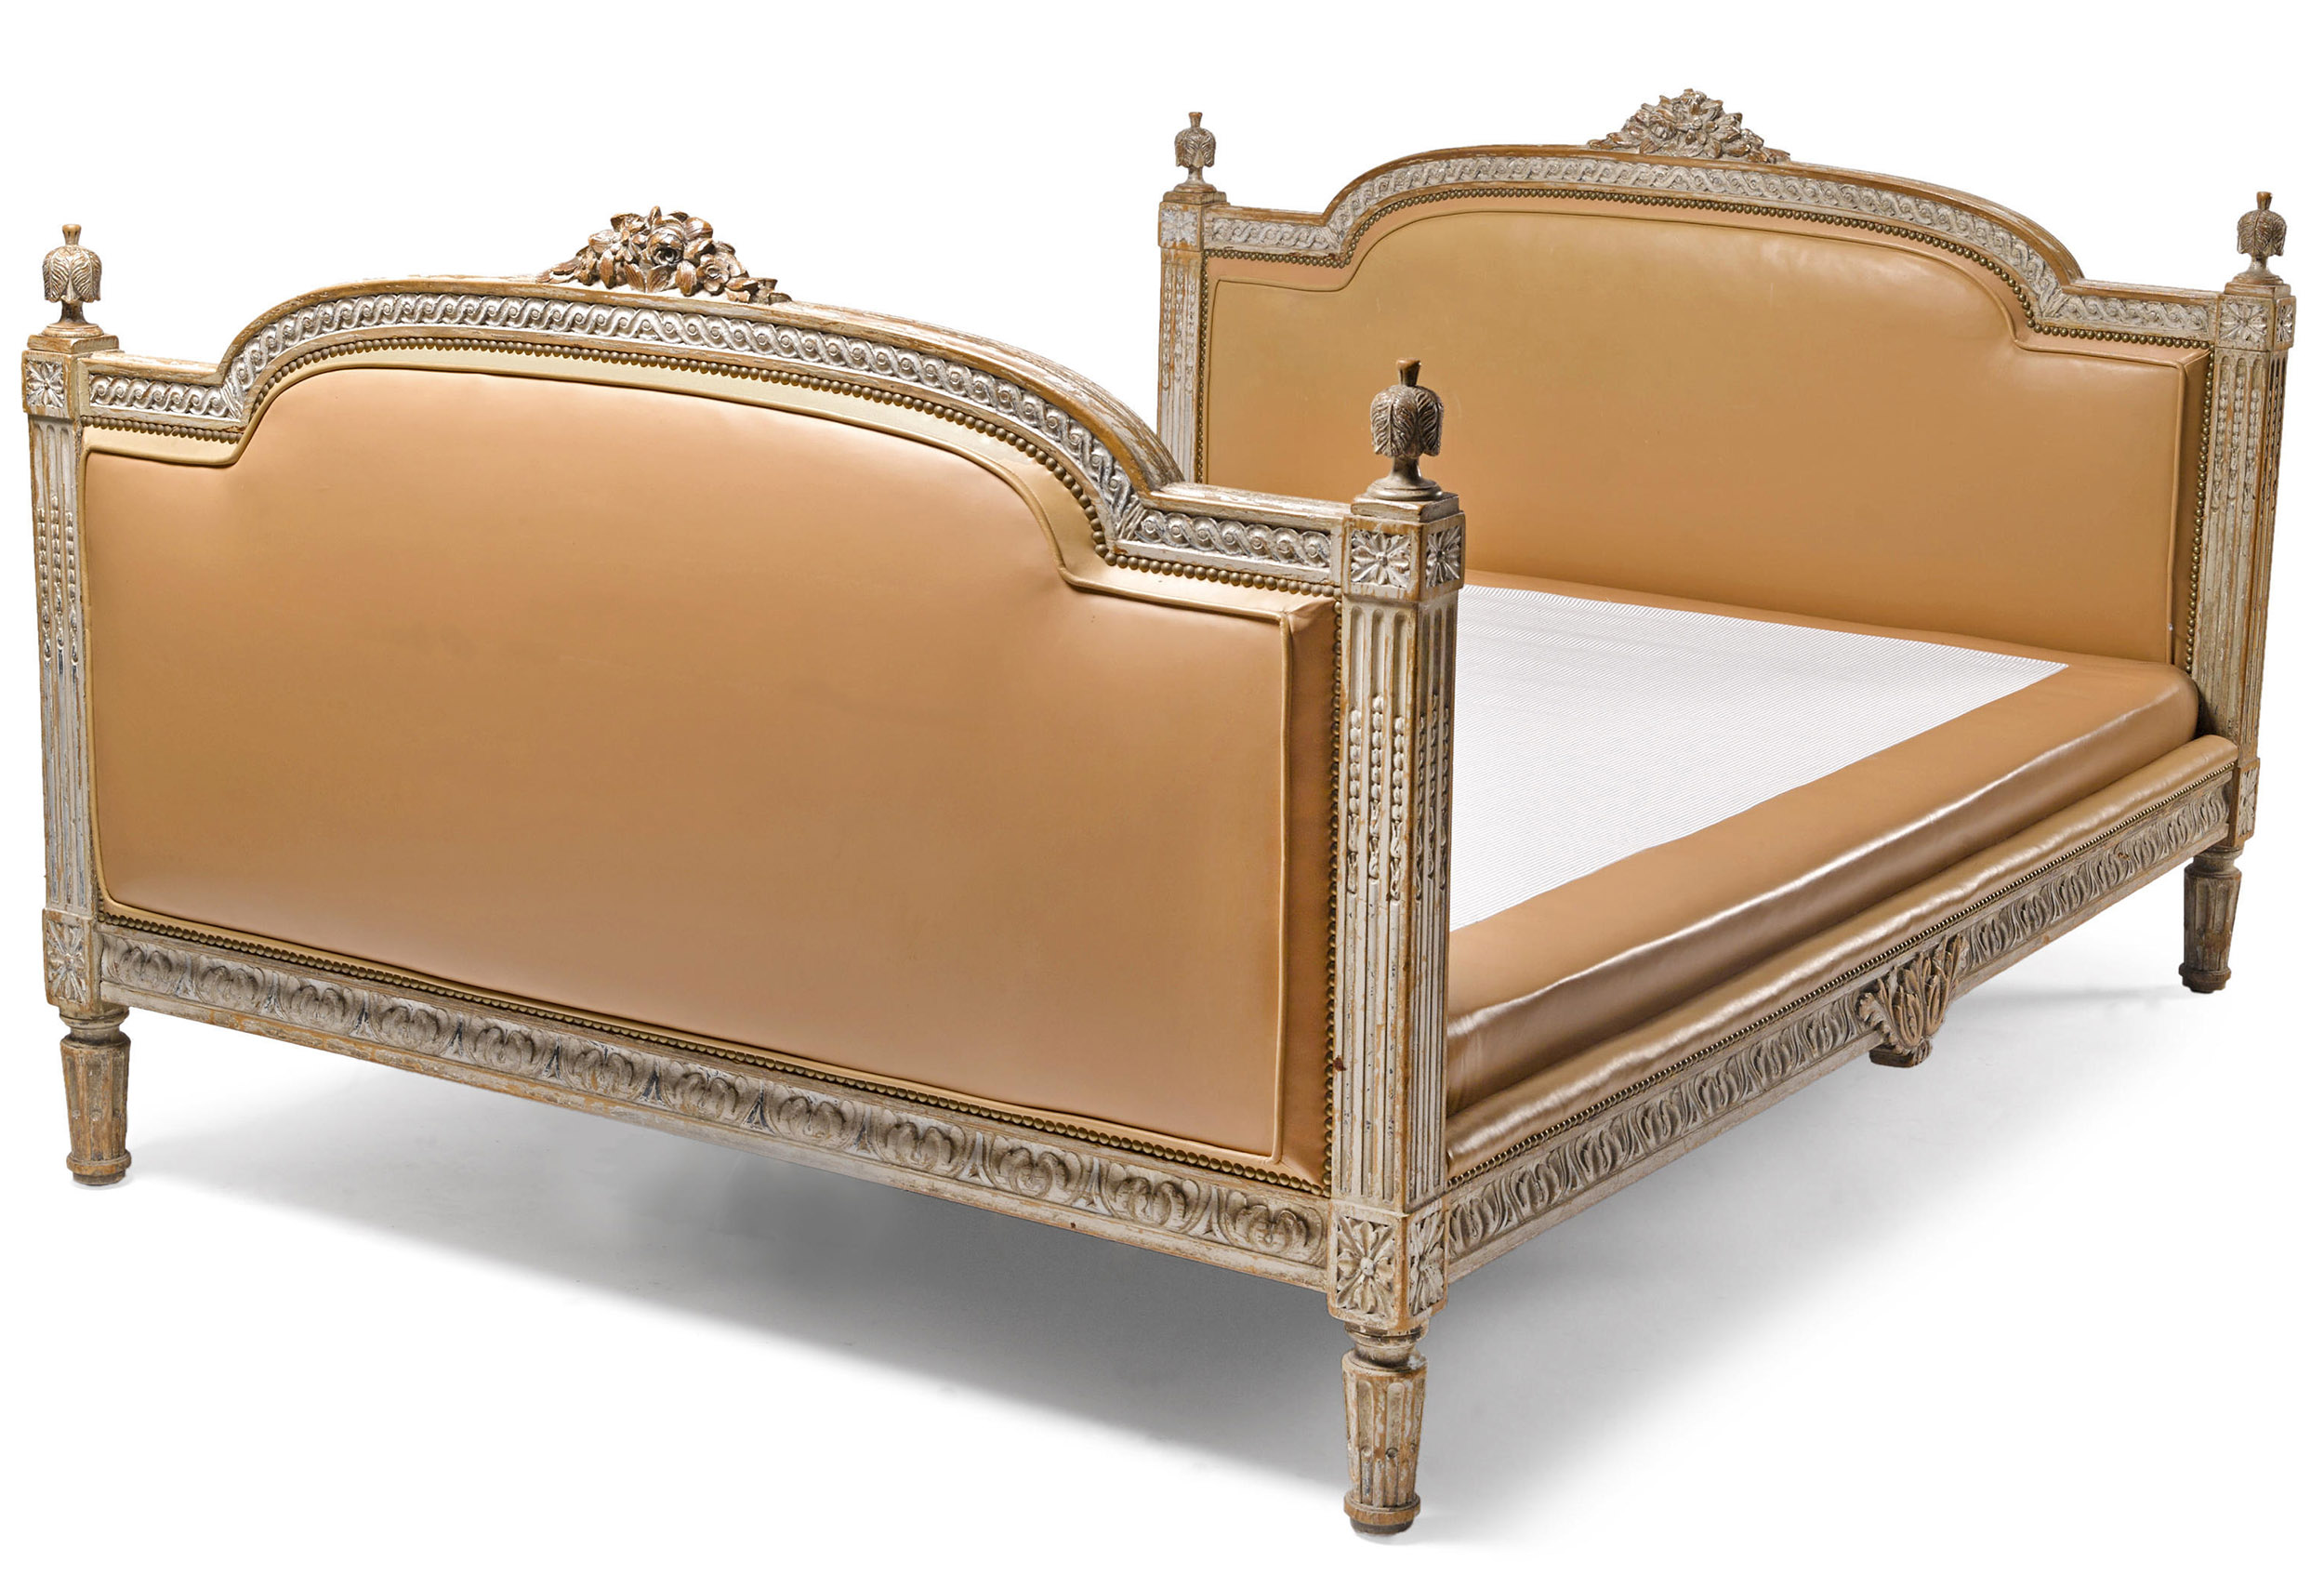 Very fine, French, Louis XVI period painted bed